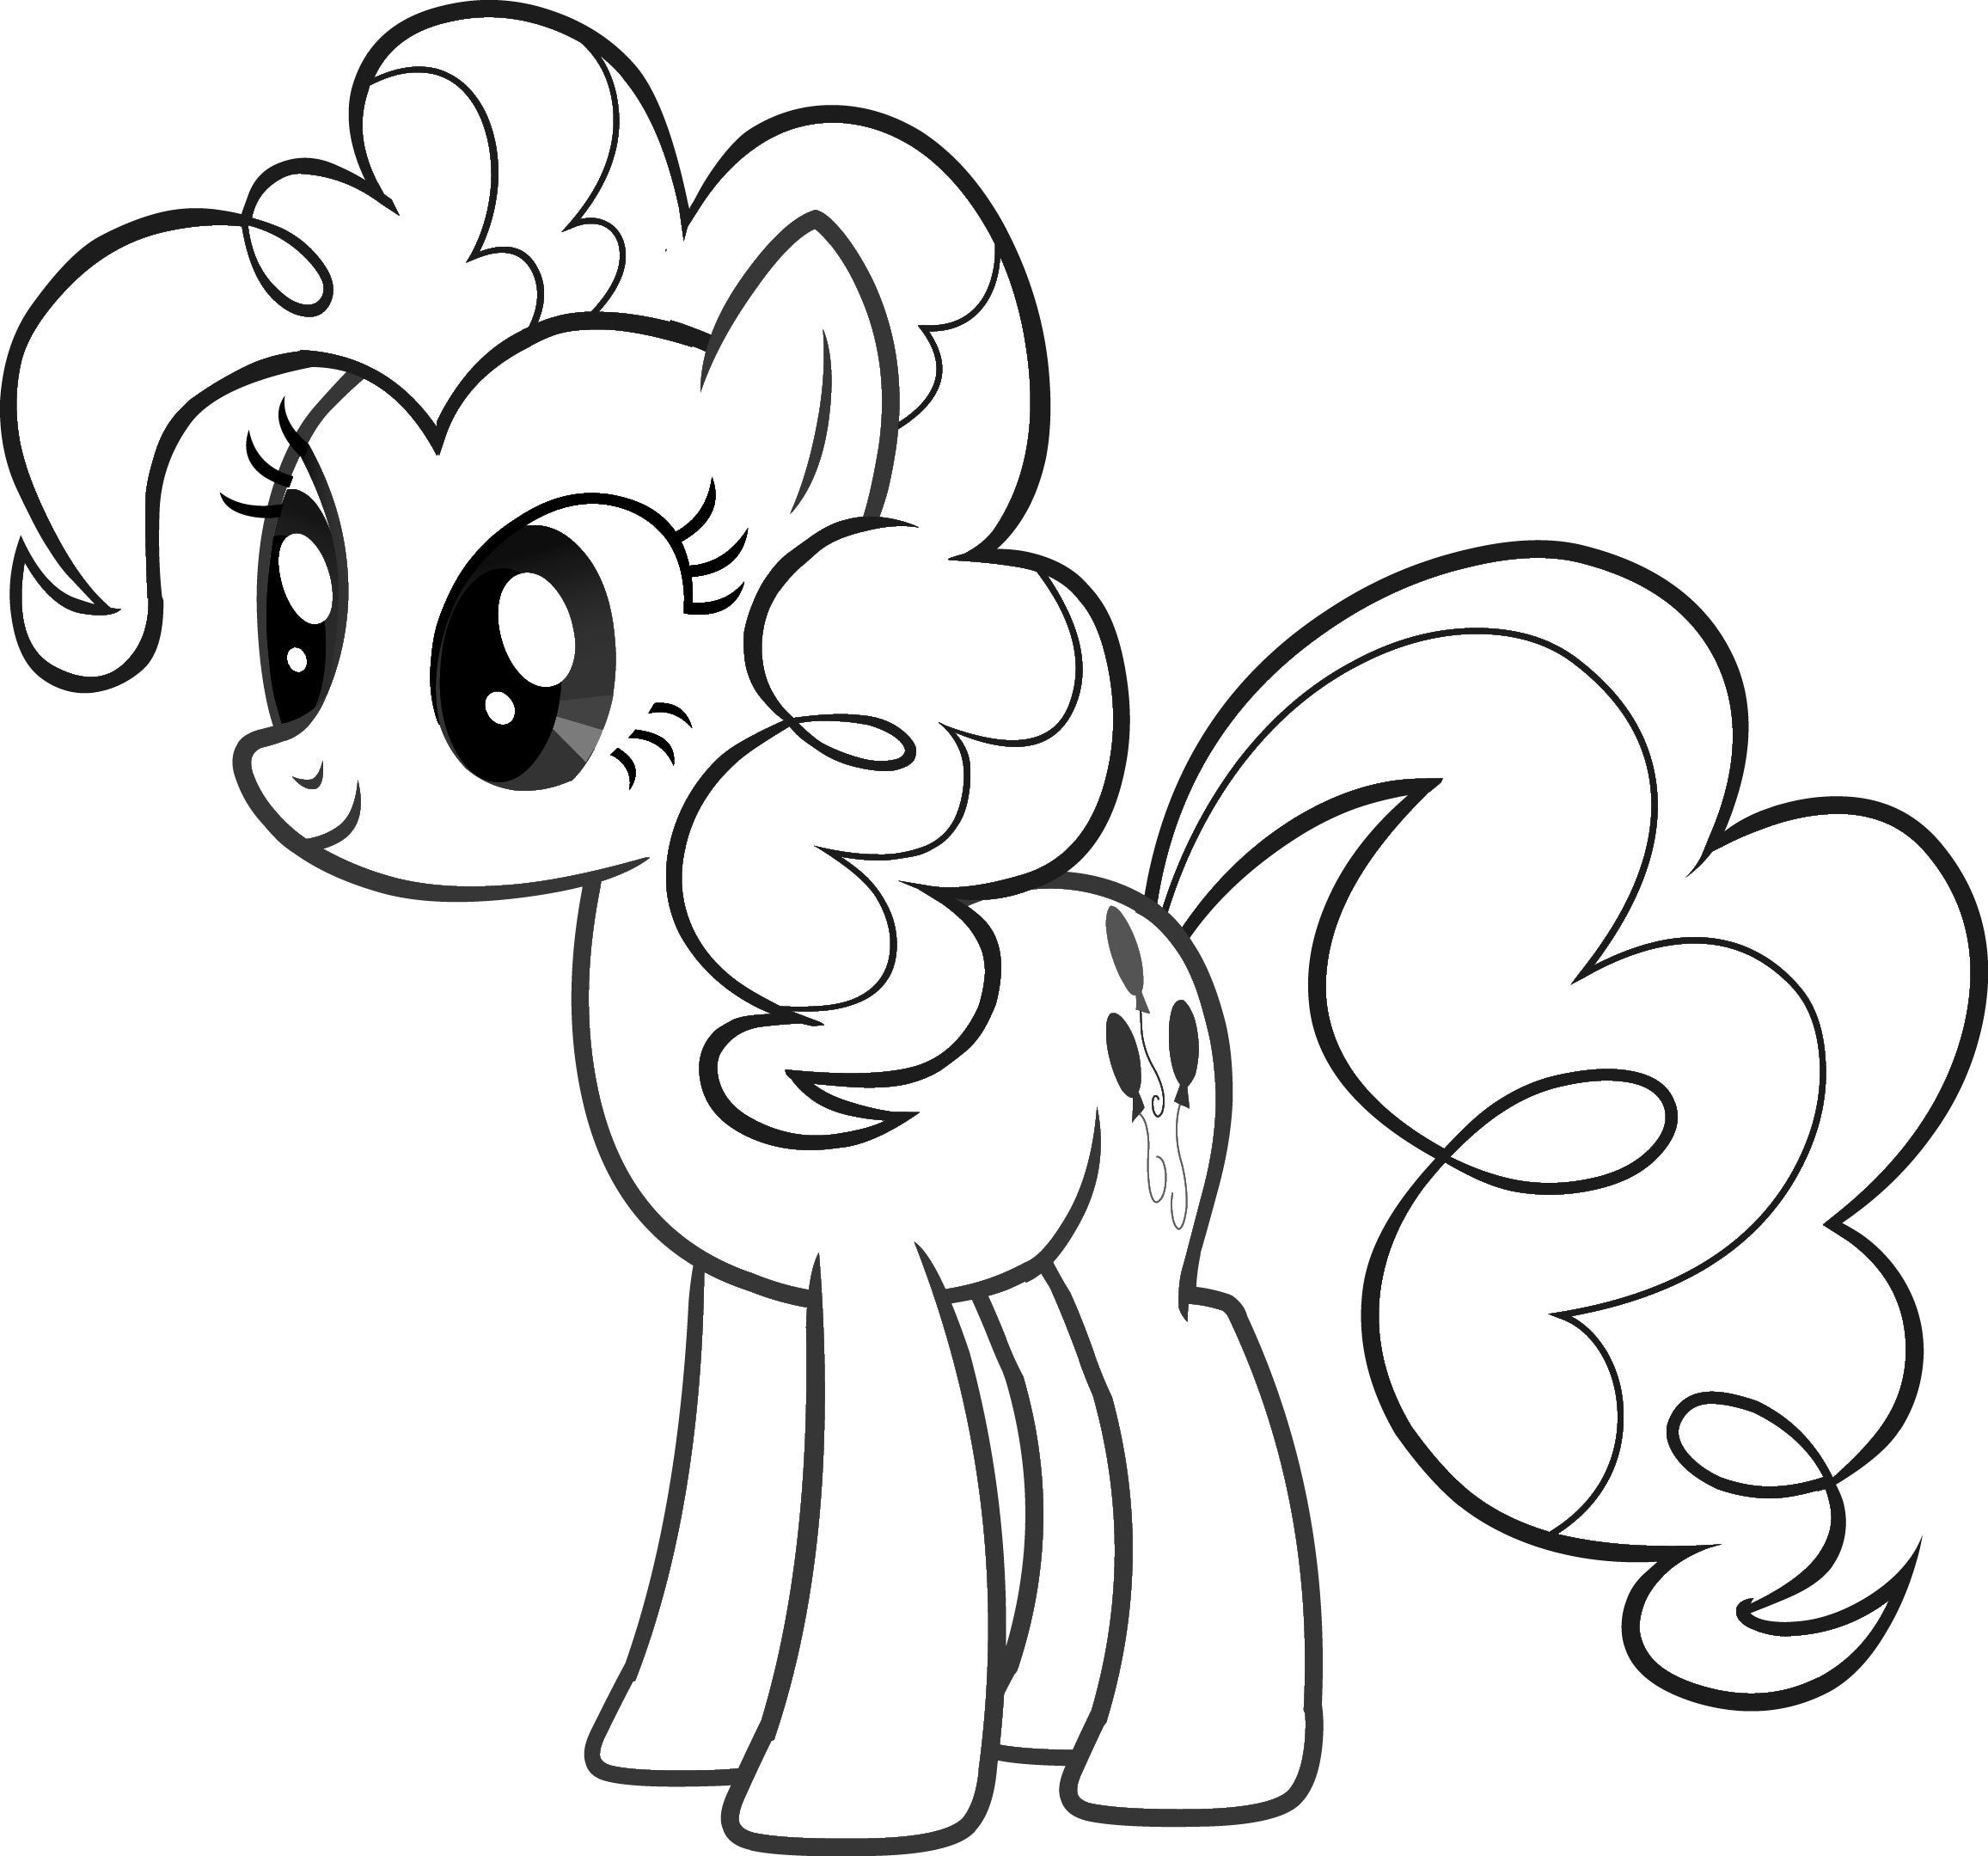 My little pony coloring pages hd - My Little Pony Coloring Pages